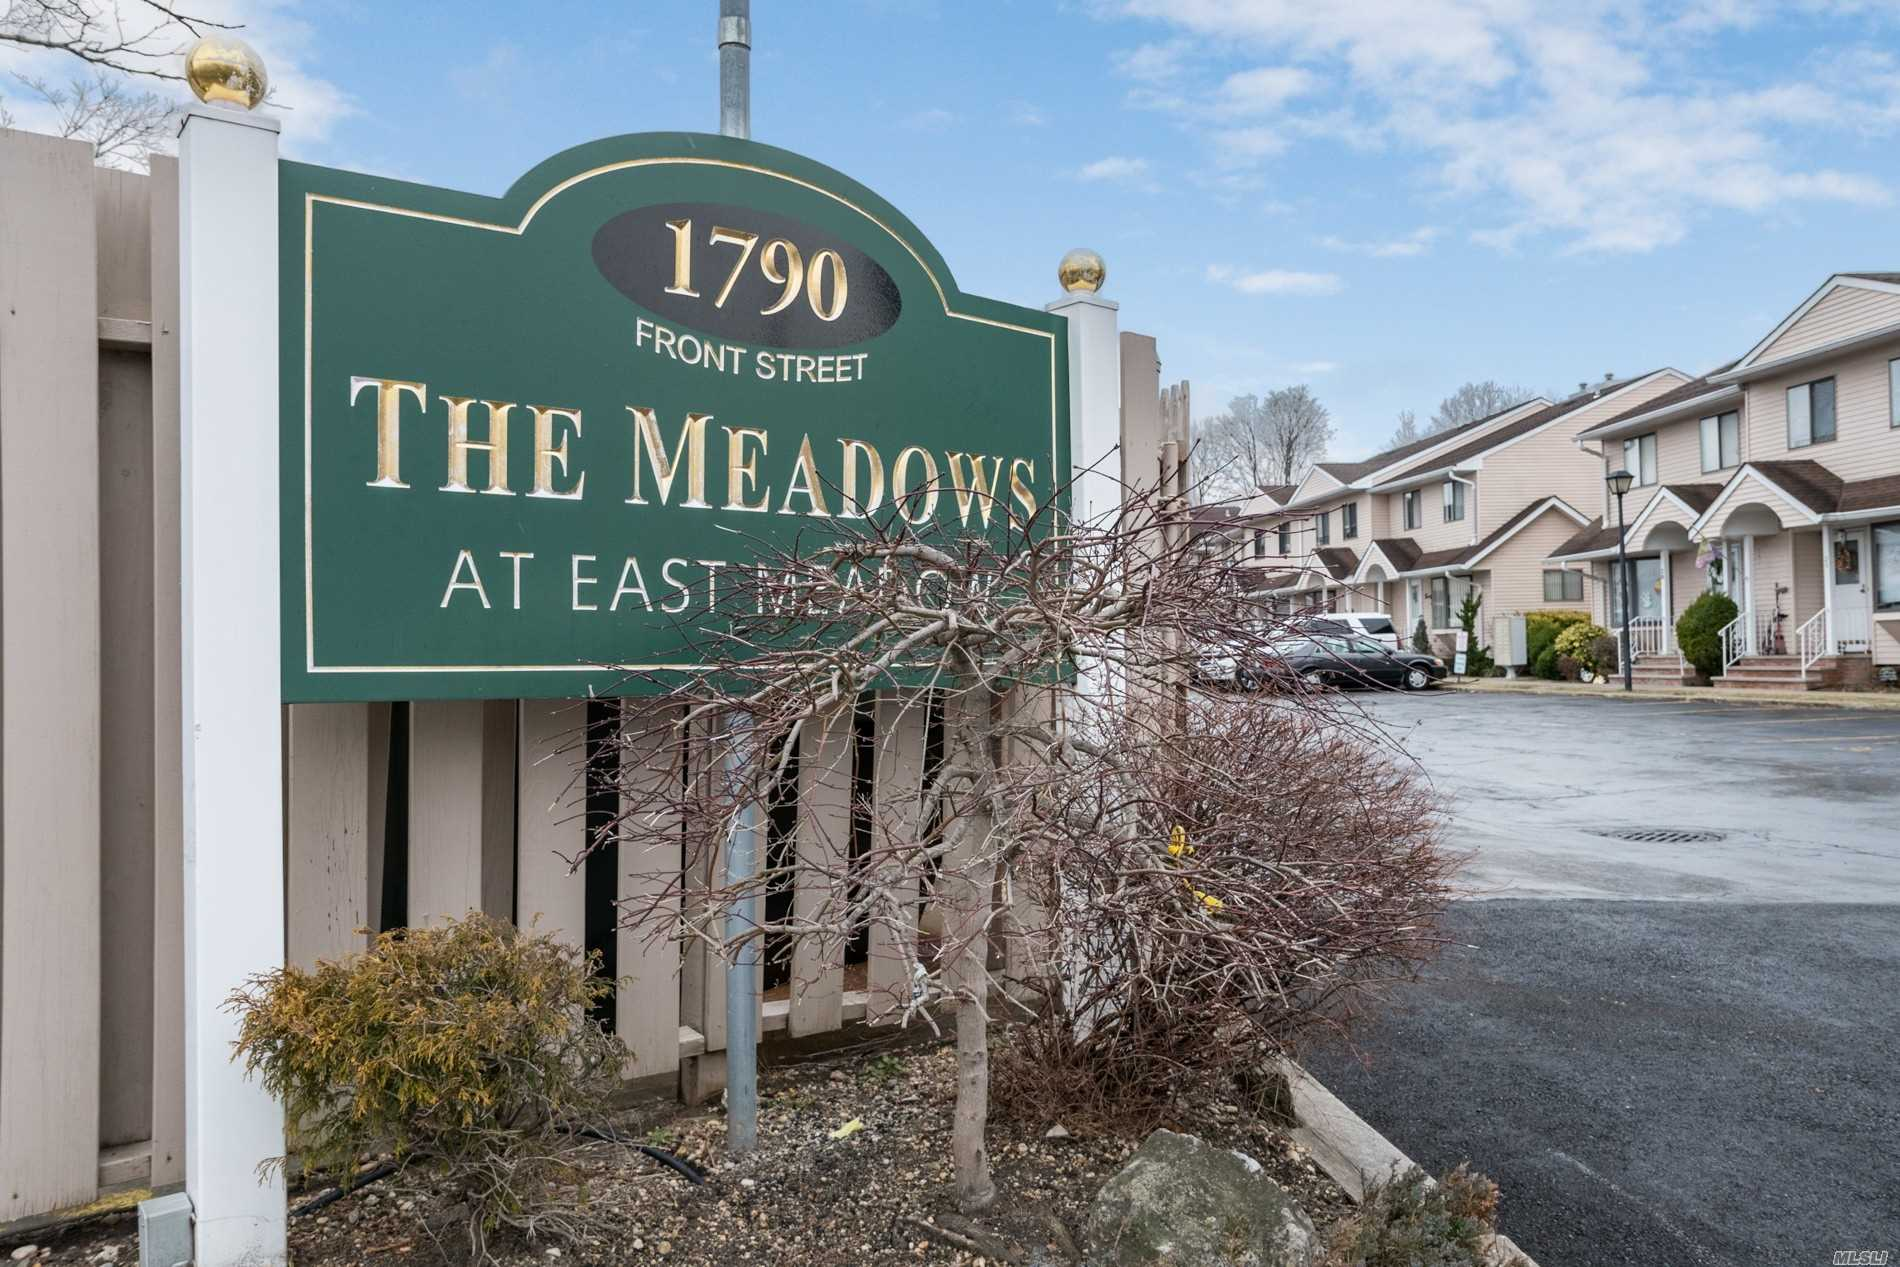 Beautiful 3 Floor Townhouse - Corner Unit. Large LR/DR, Sliders from LR to Deck. Spacious Master w/Full Mstr Bath. Finished Family Room in Basement, 2 Parking Spaces for the unit. Lots of Storage. A Must See!